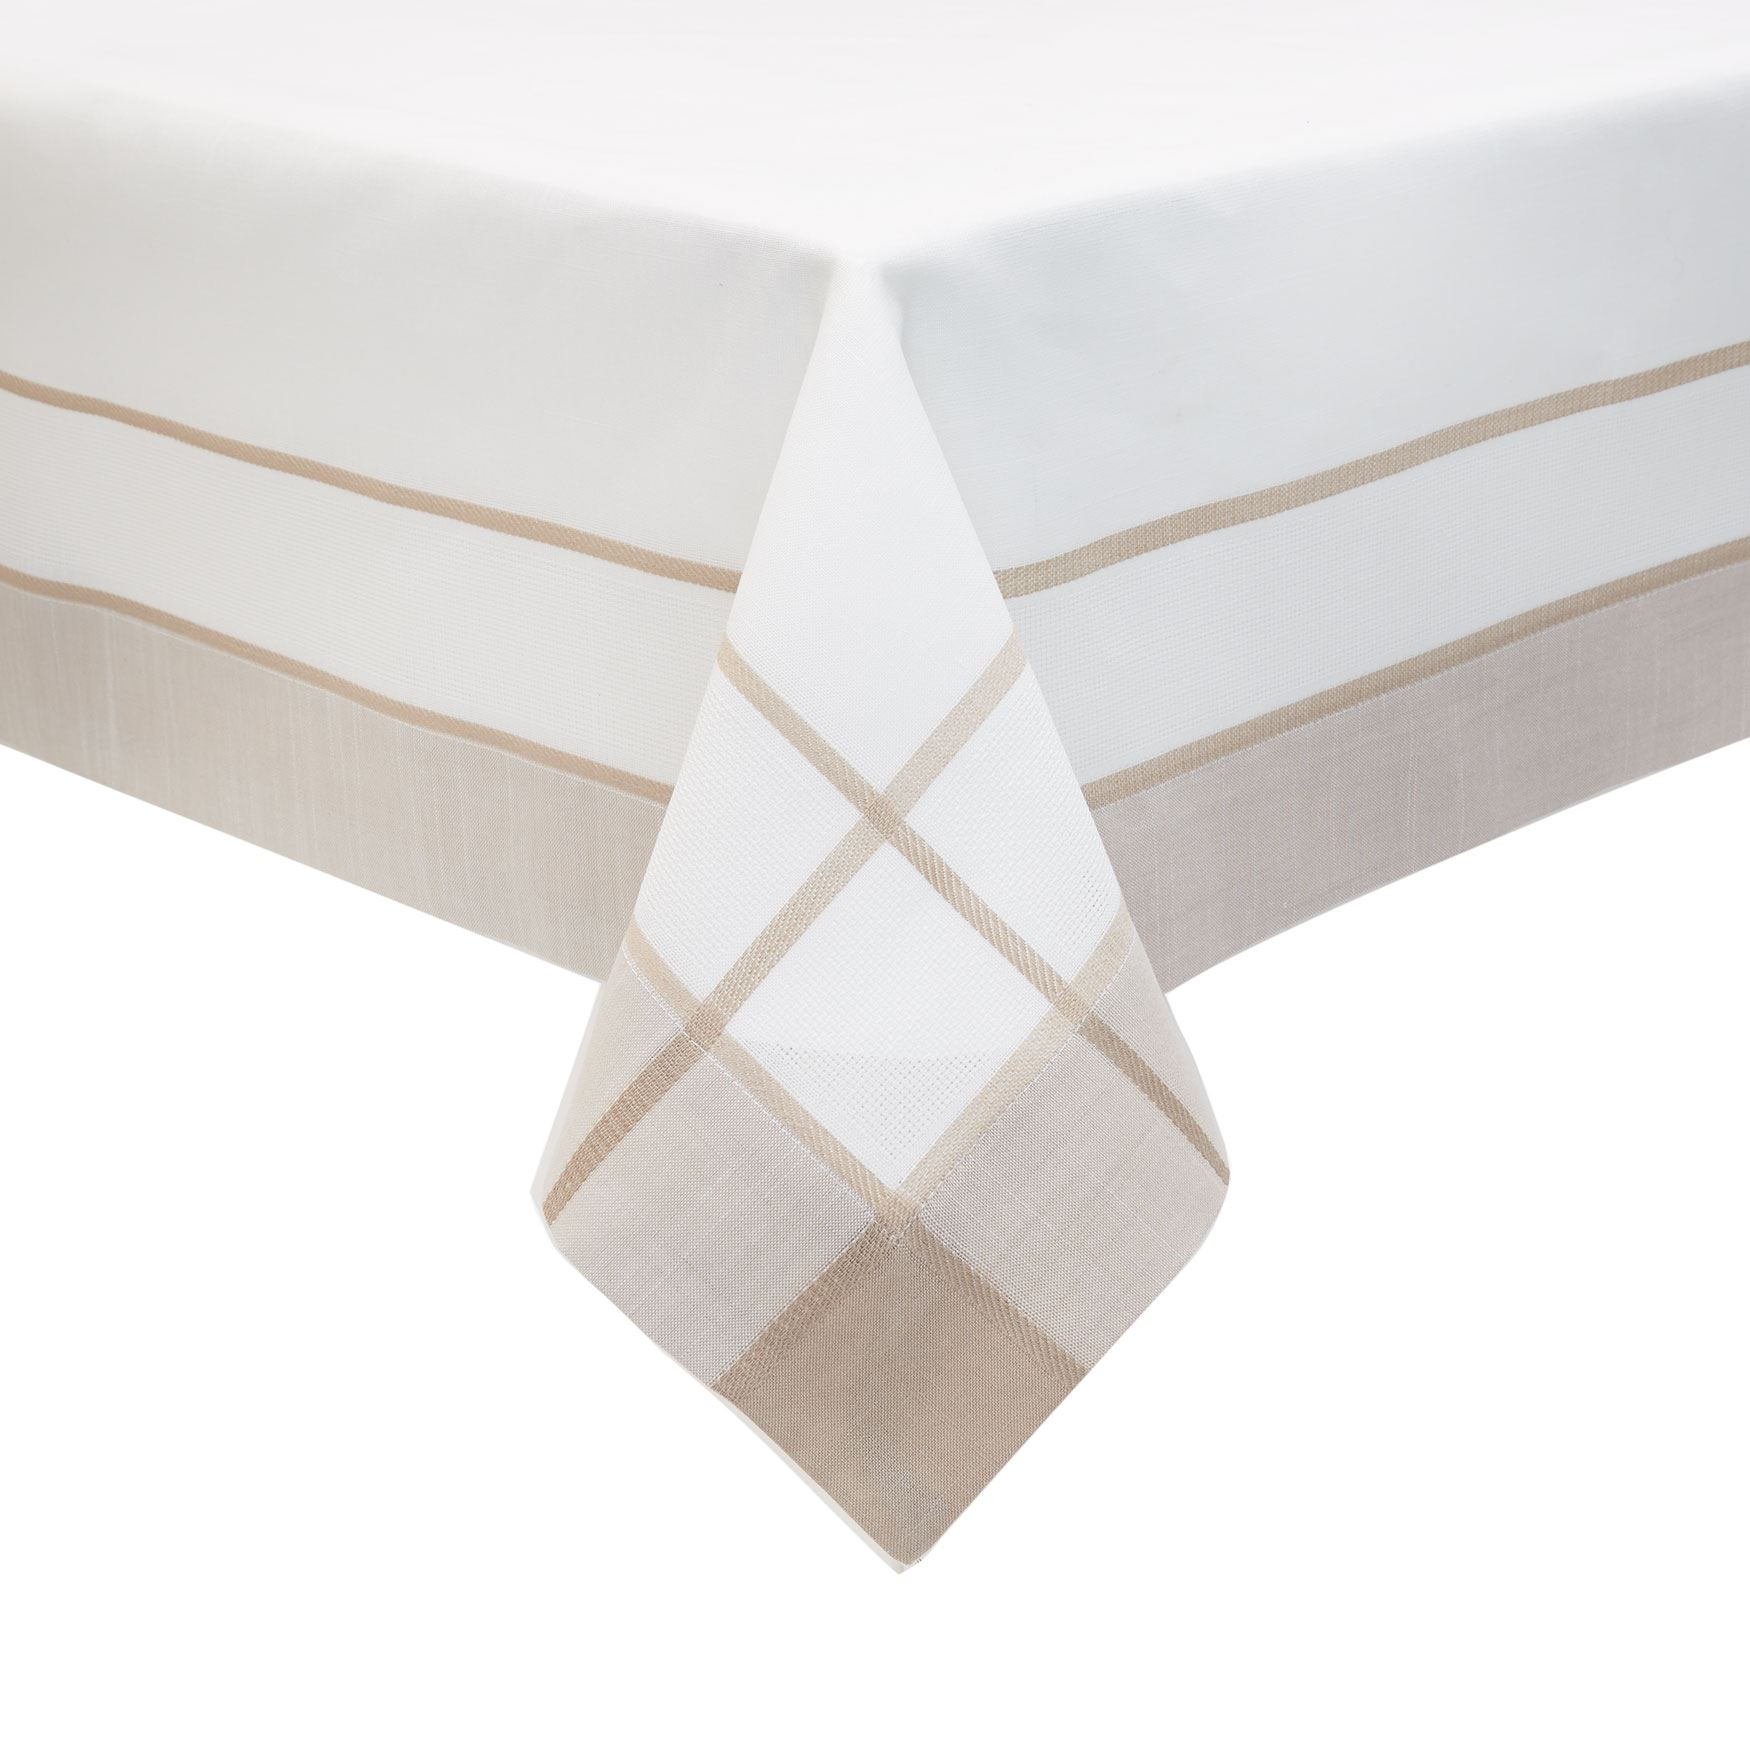 Two-Tone Border Tablecloth, WHITE BEIGE